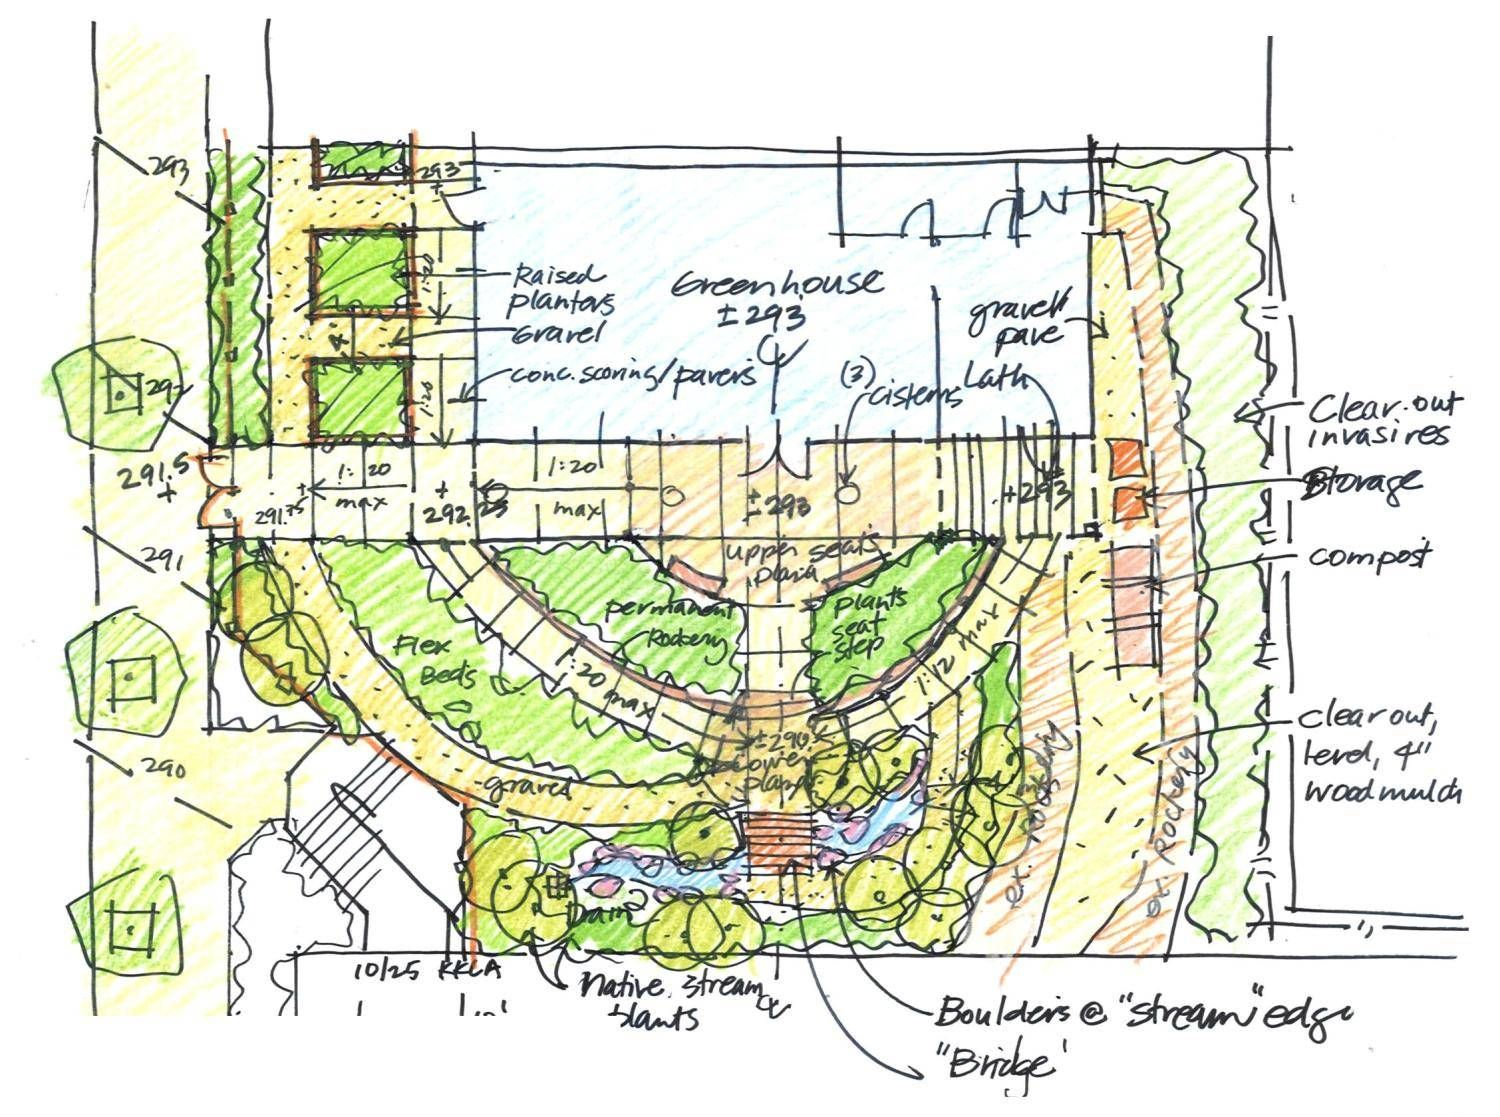 trend landscape plan drawing 5 how to draw architectural landscape